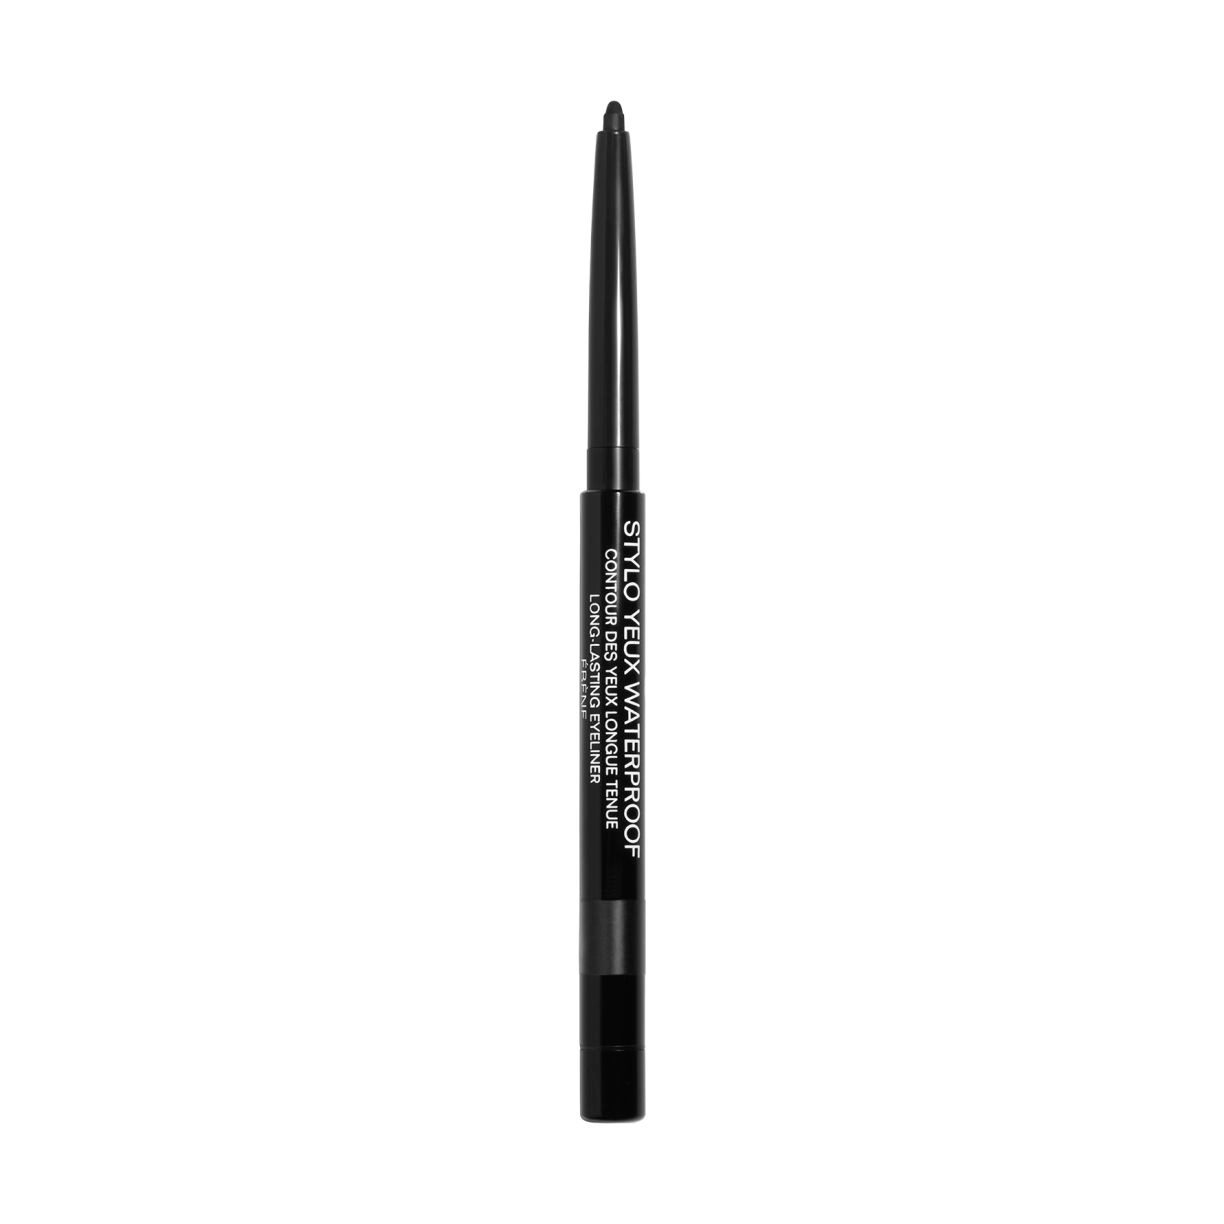 STYLO YEUX WATERPROOF LONG-LASTING EYELINER